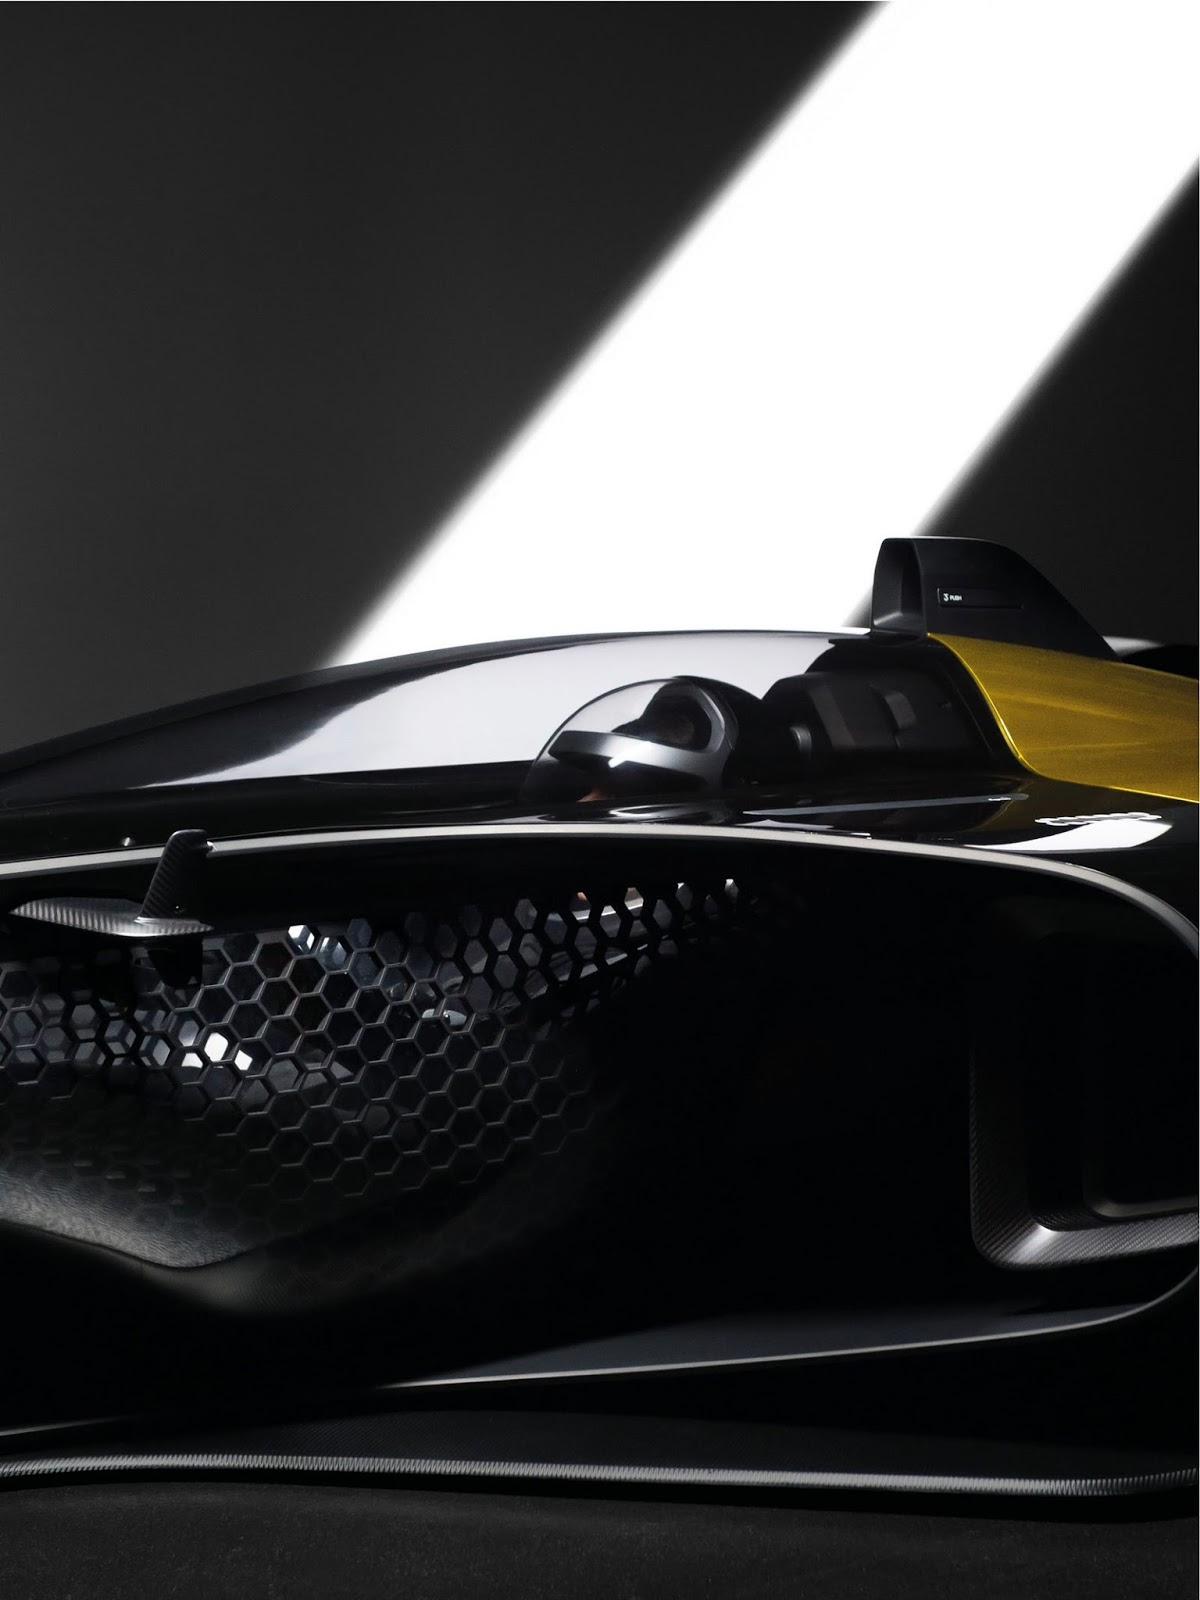 Renault RS 2027 Vision concept (57)